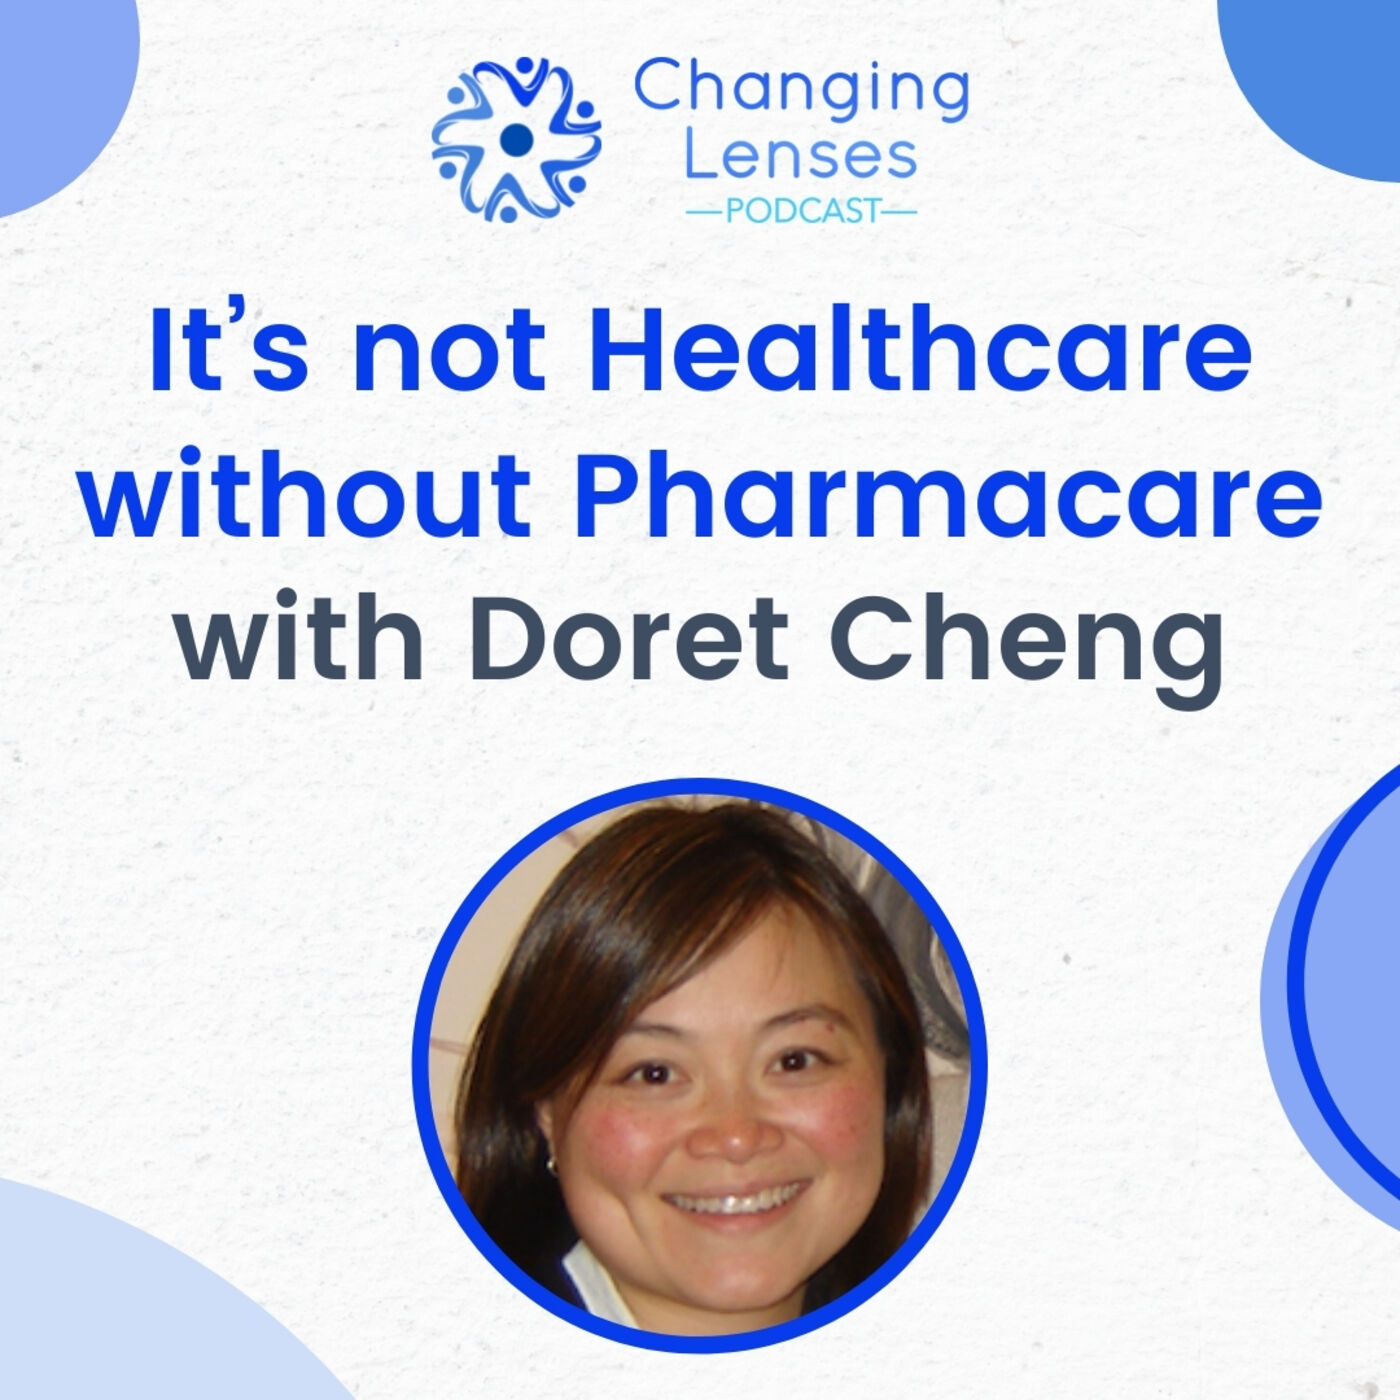 Ep06: It's not Healthcare without Pharmacare, with Doret Cheng